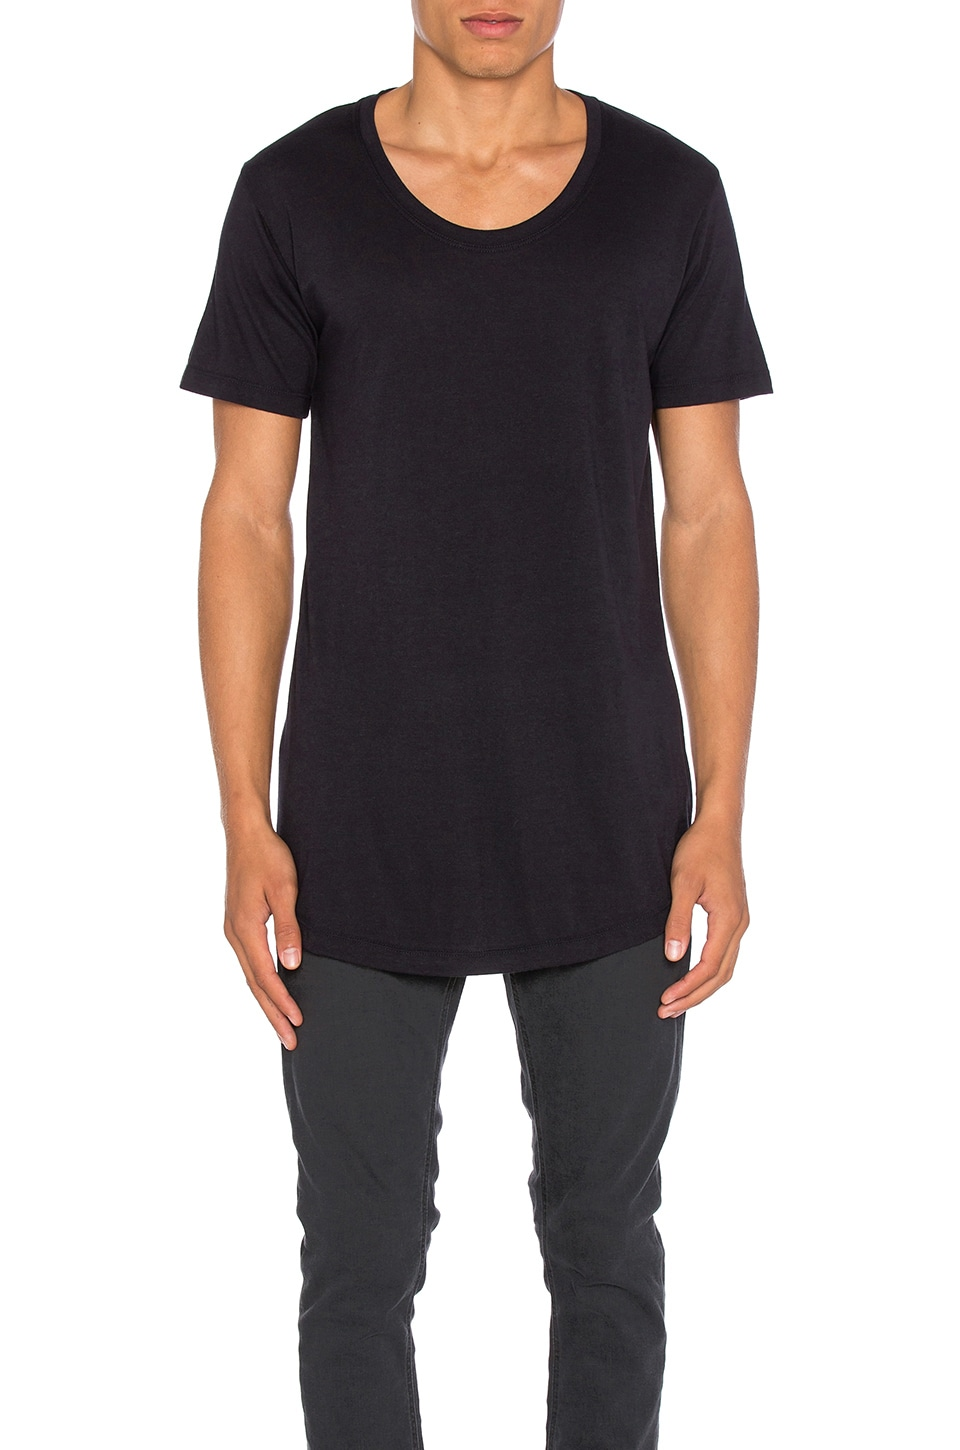 Curve U-Neck by JOHN ELLIOTT